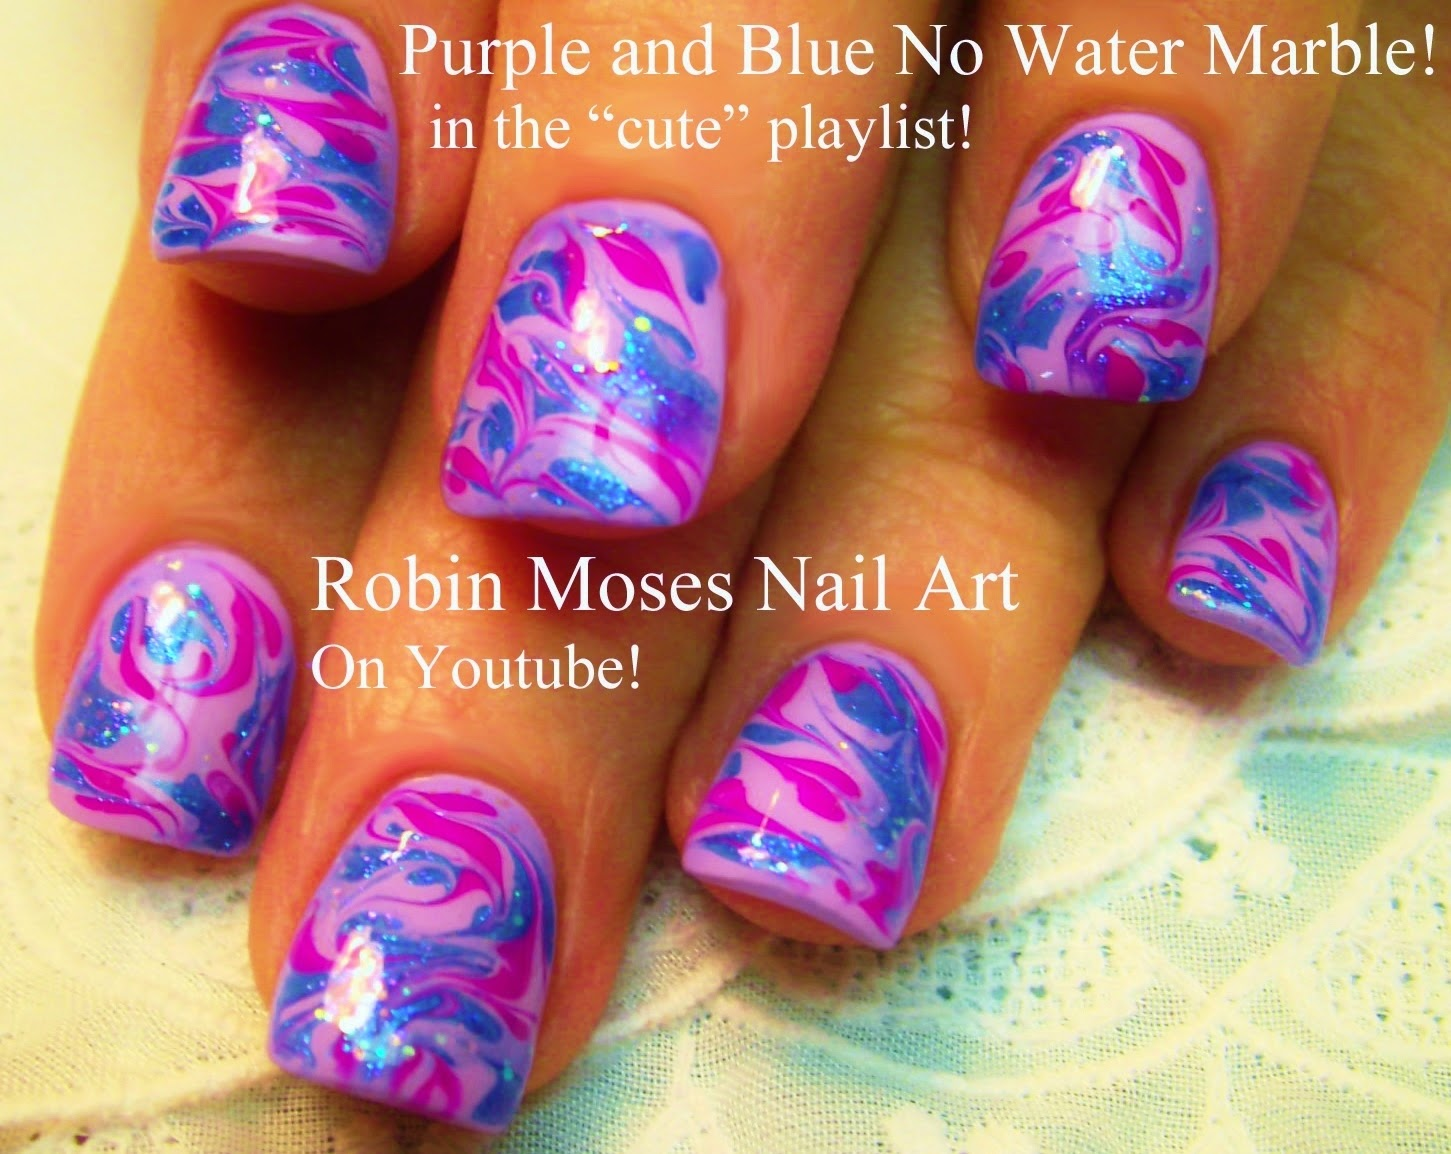 Robin moses nail art no water marble nails marble nails blue no water marble nails marble nails blue nail art purple nail art water marbling no water marbling fun nail art nail art no water marbling prinsesfo Gallery